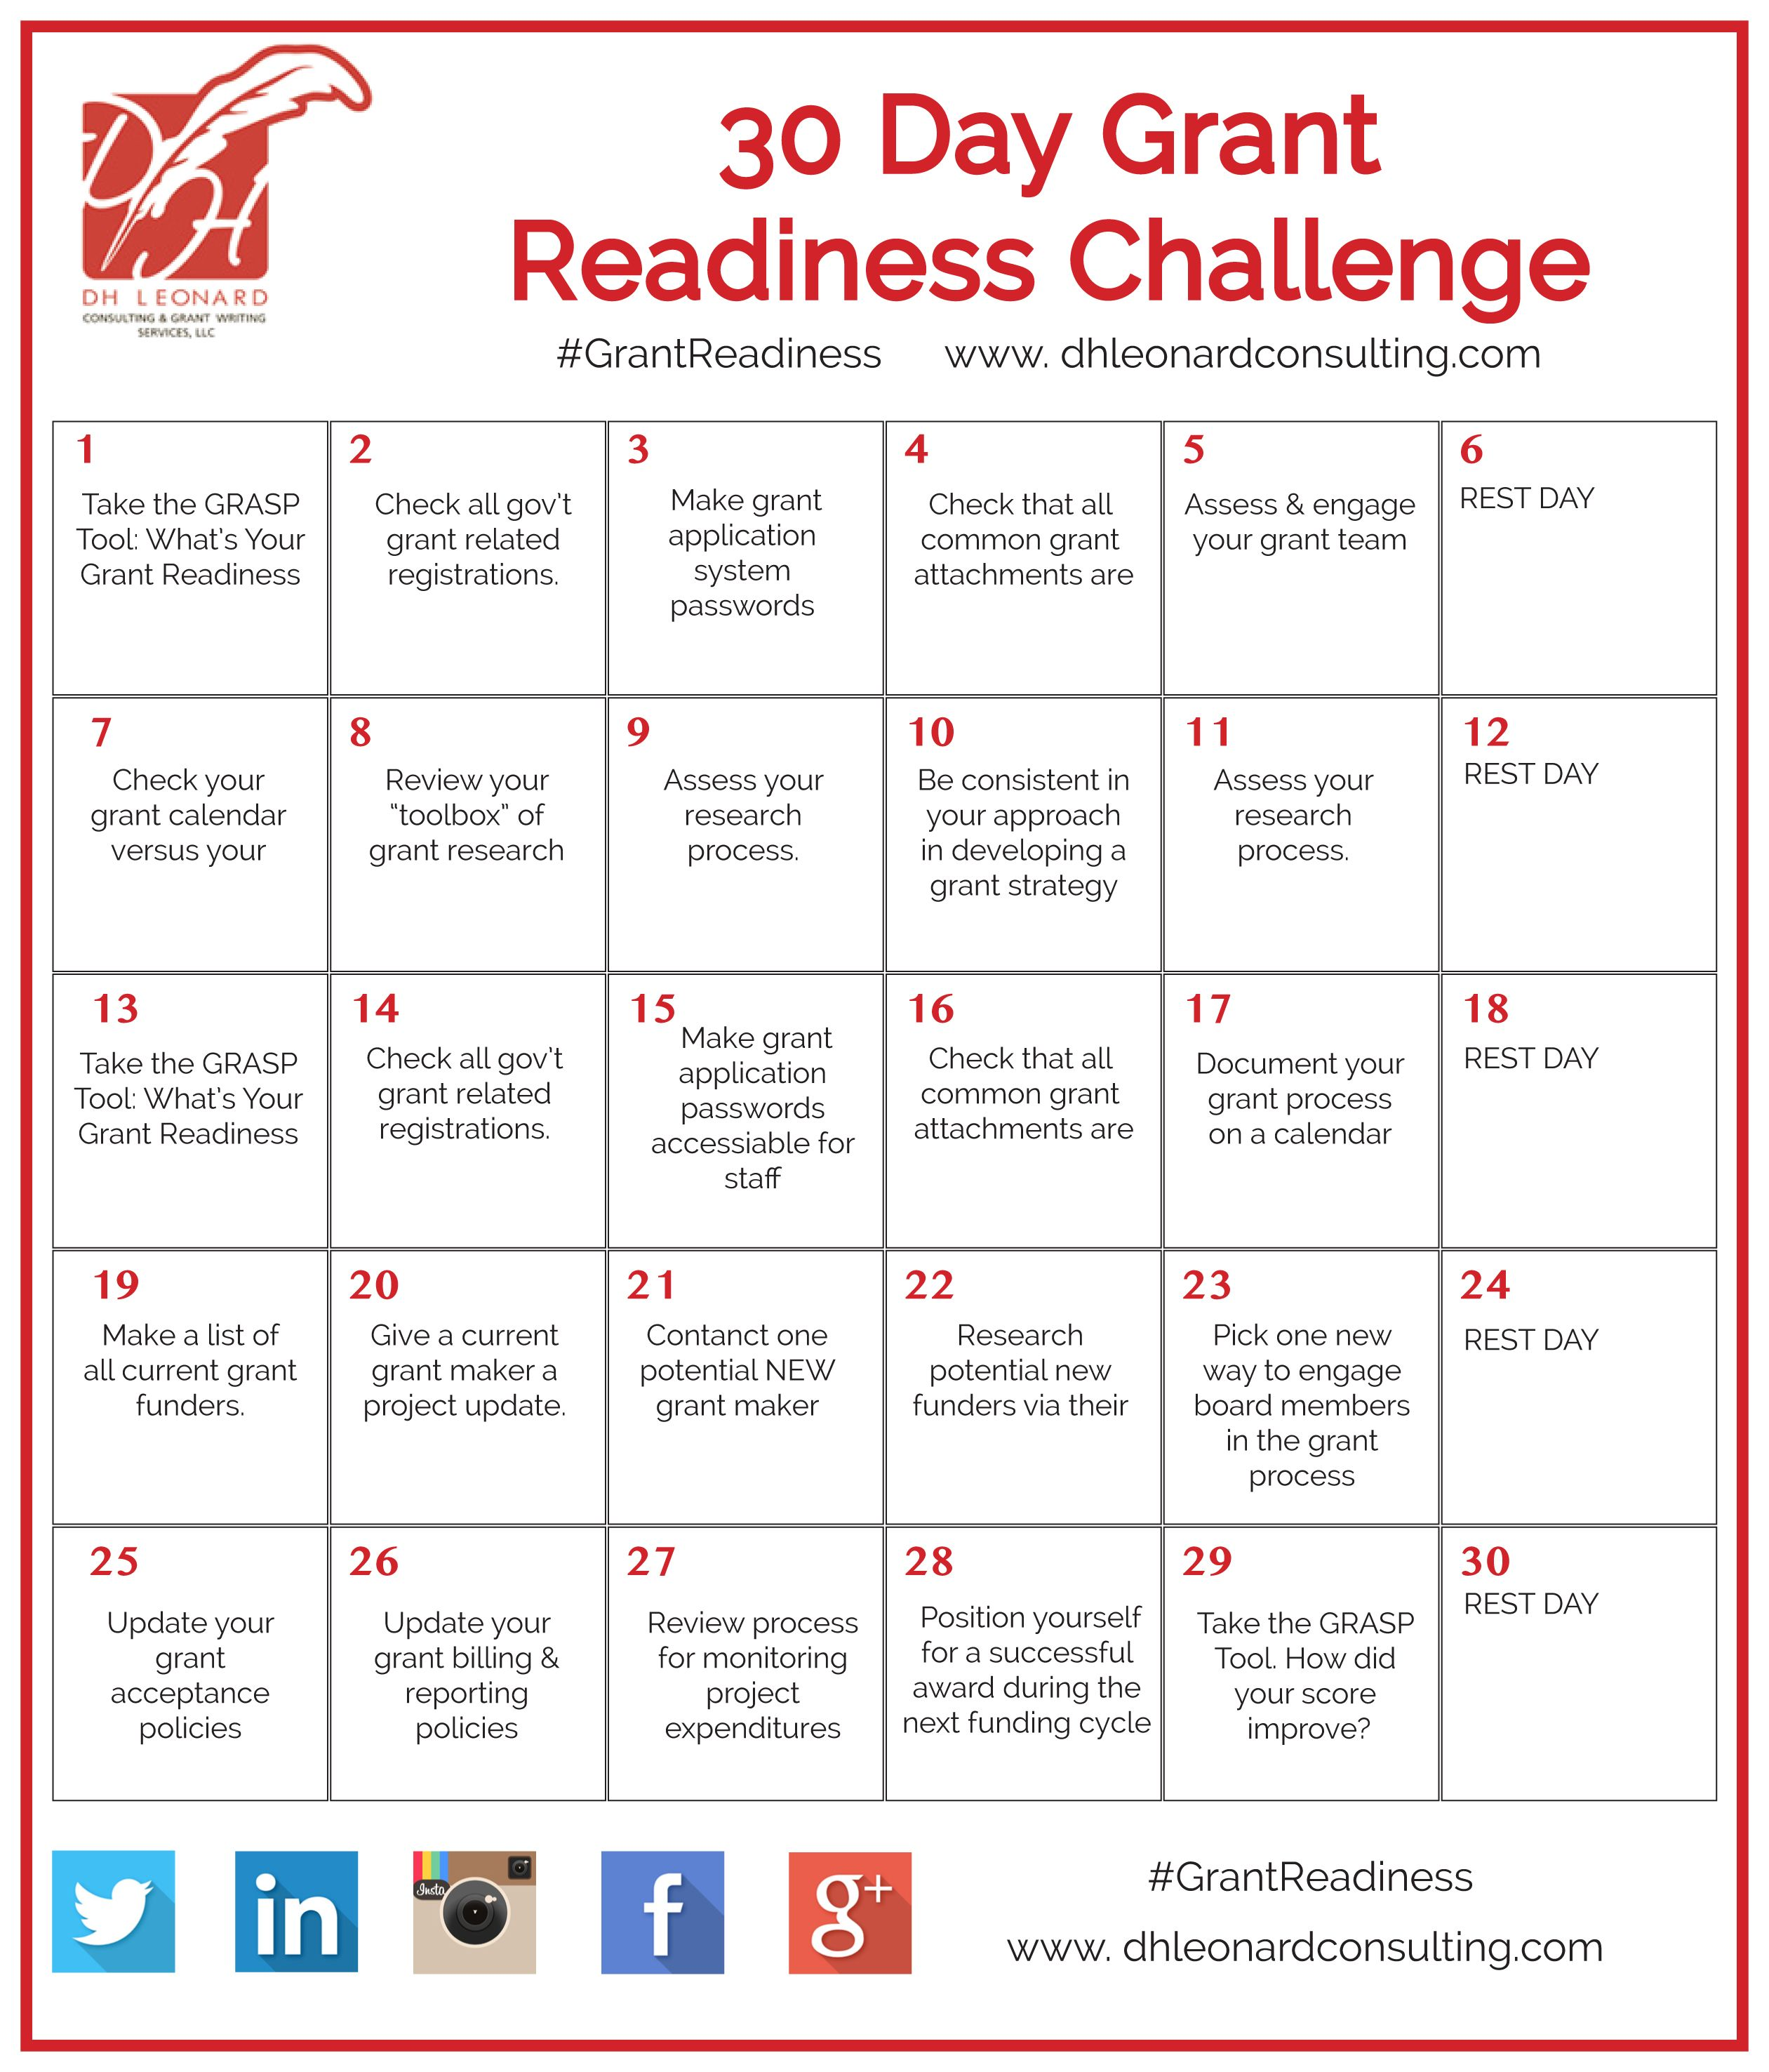 November 1st We Are Launching Our 30 Day #GrantReadiness